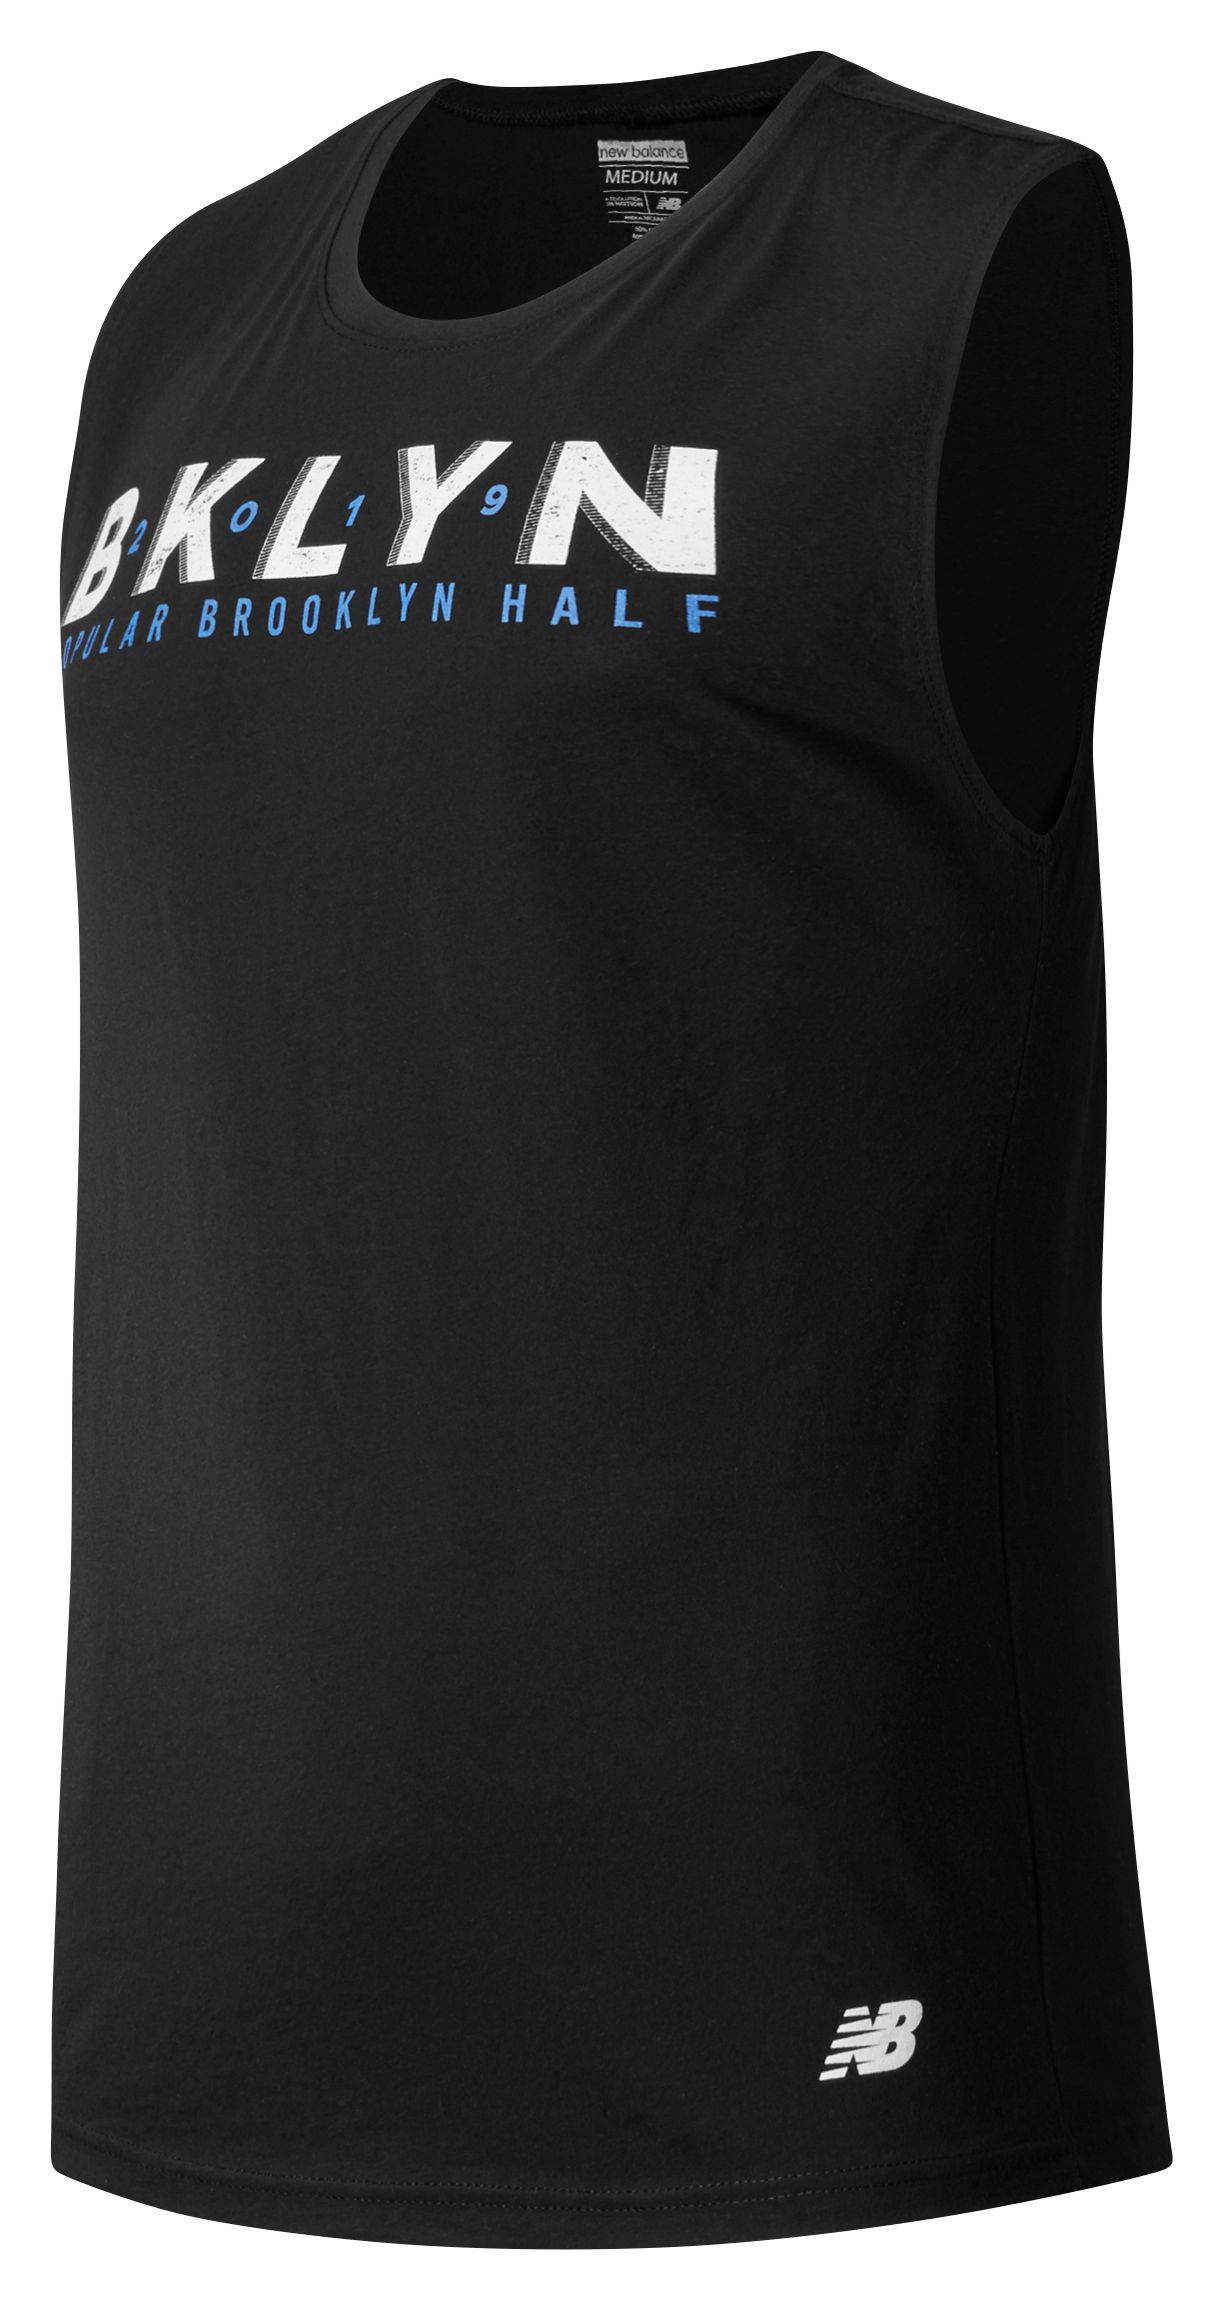 Men's Brooklyn Half 2019 Singlet